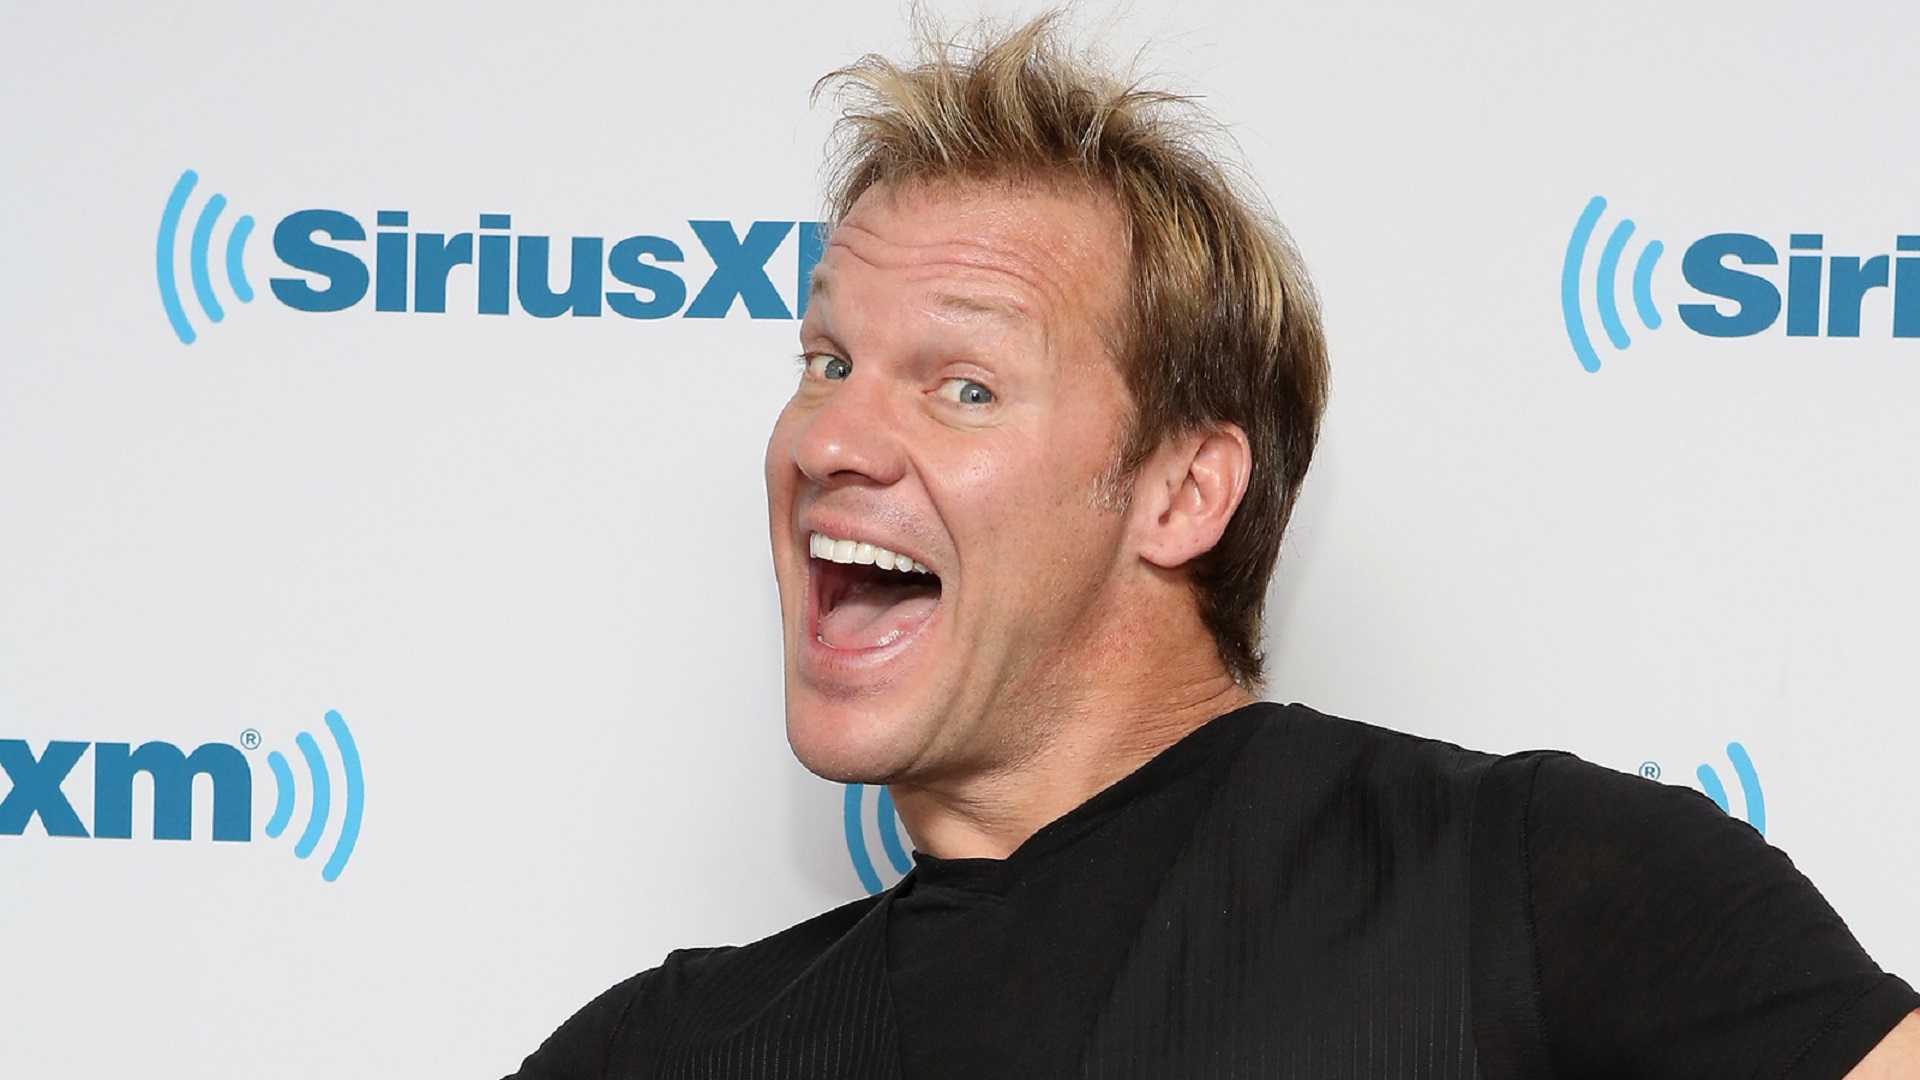 Chris Jericho Background